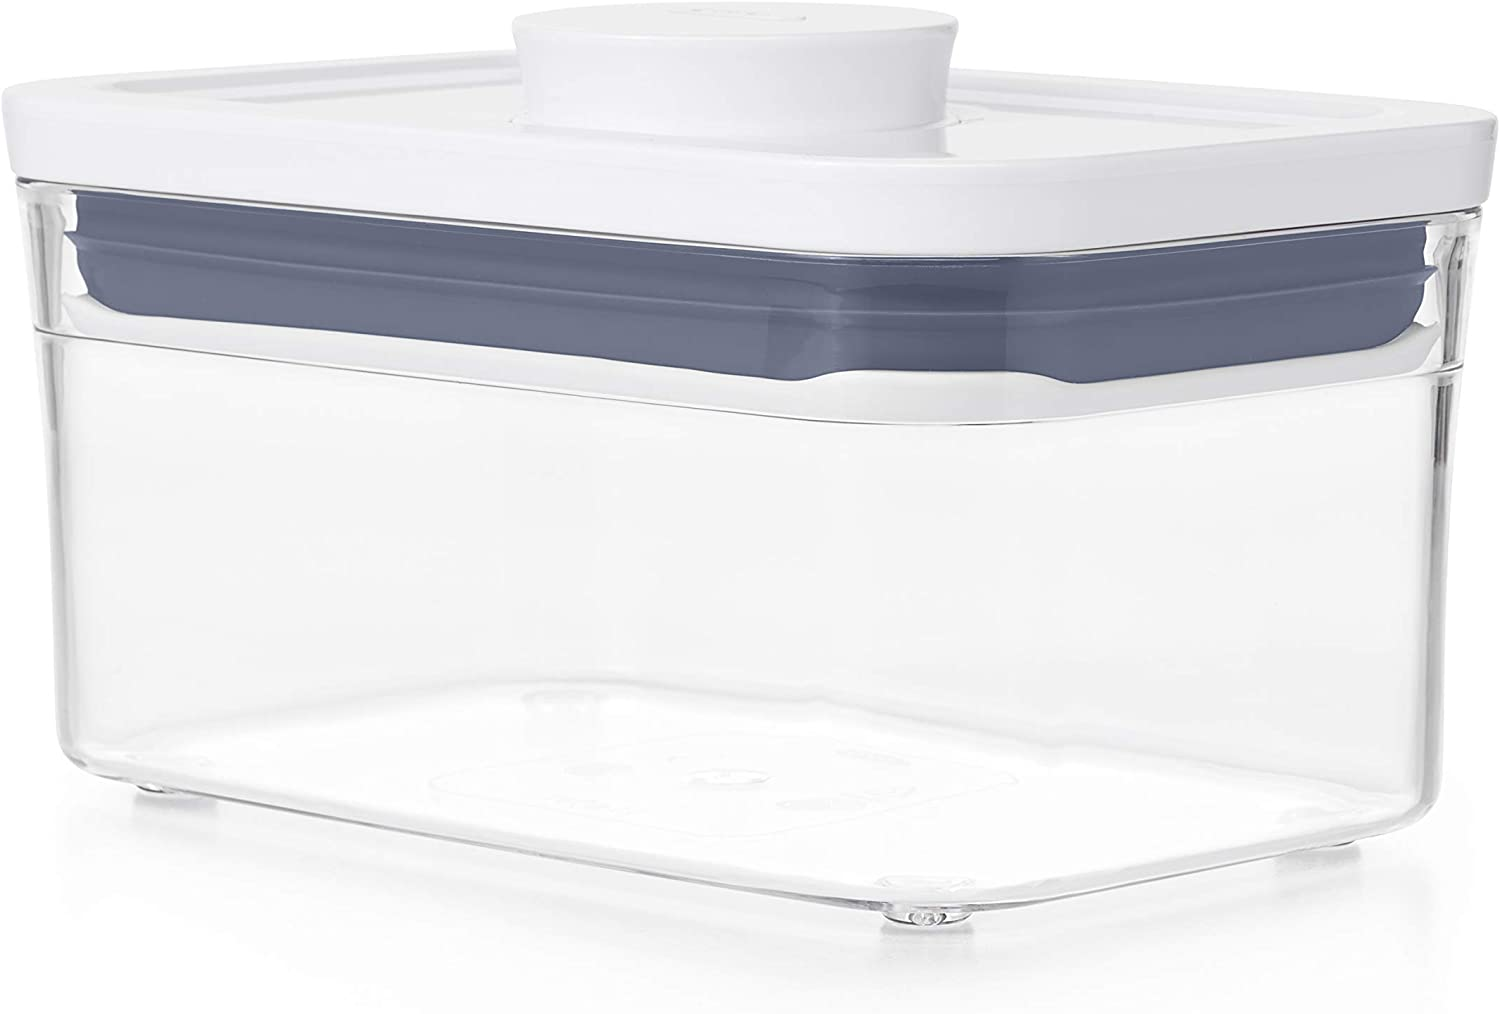 NEW OXO Good Grips POP Container - Airtight Food Storage - 0.6 Qt for Tea and More